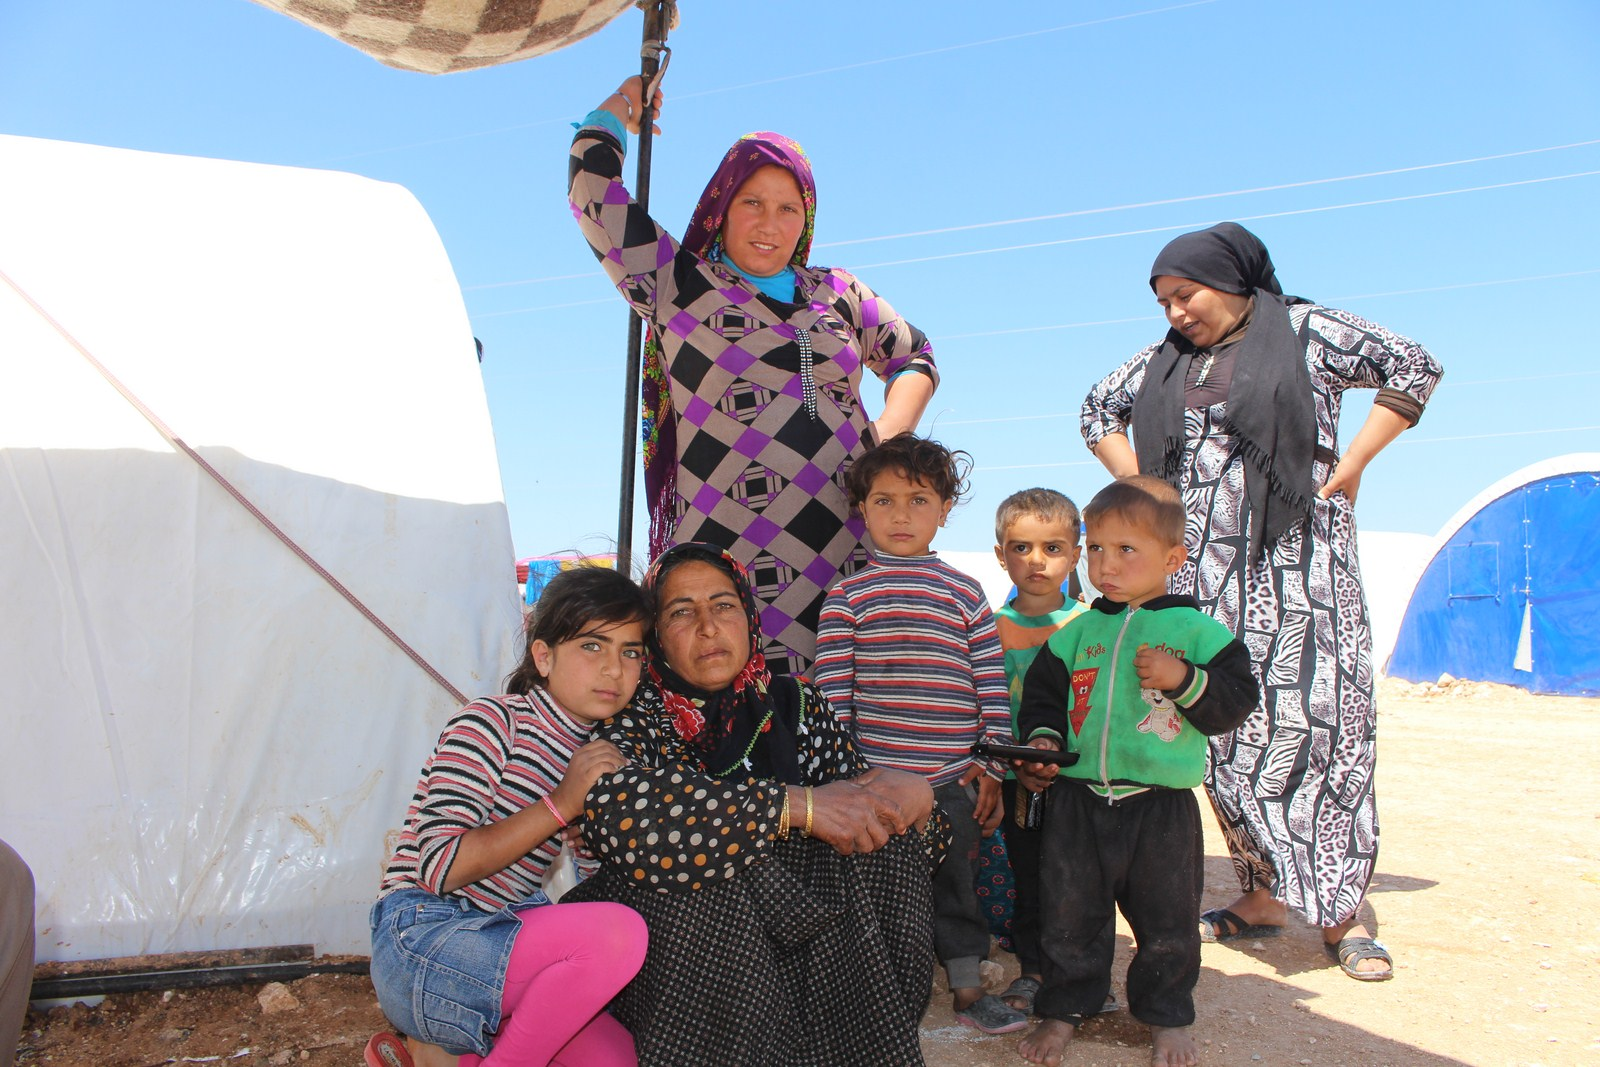 Afrin people in al-Asr camp: Afrin will win, waiting to return to Afrin